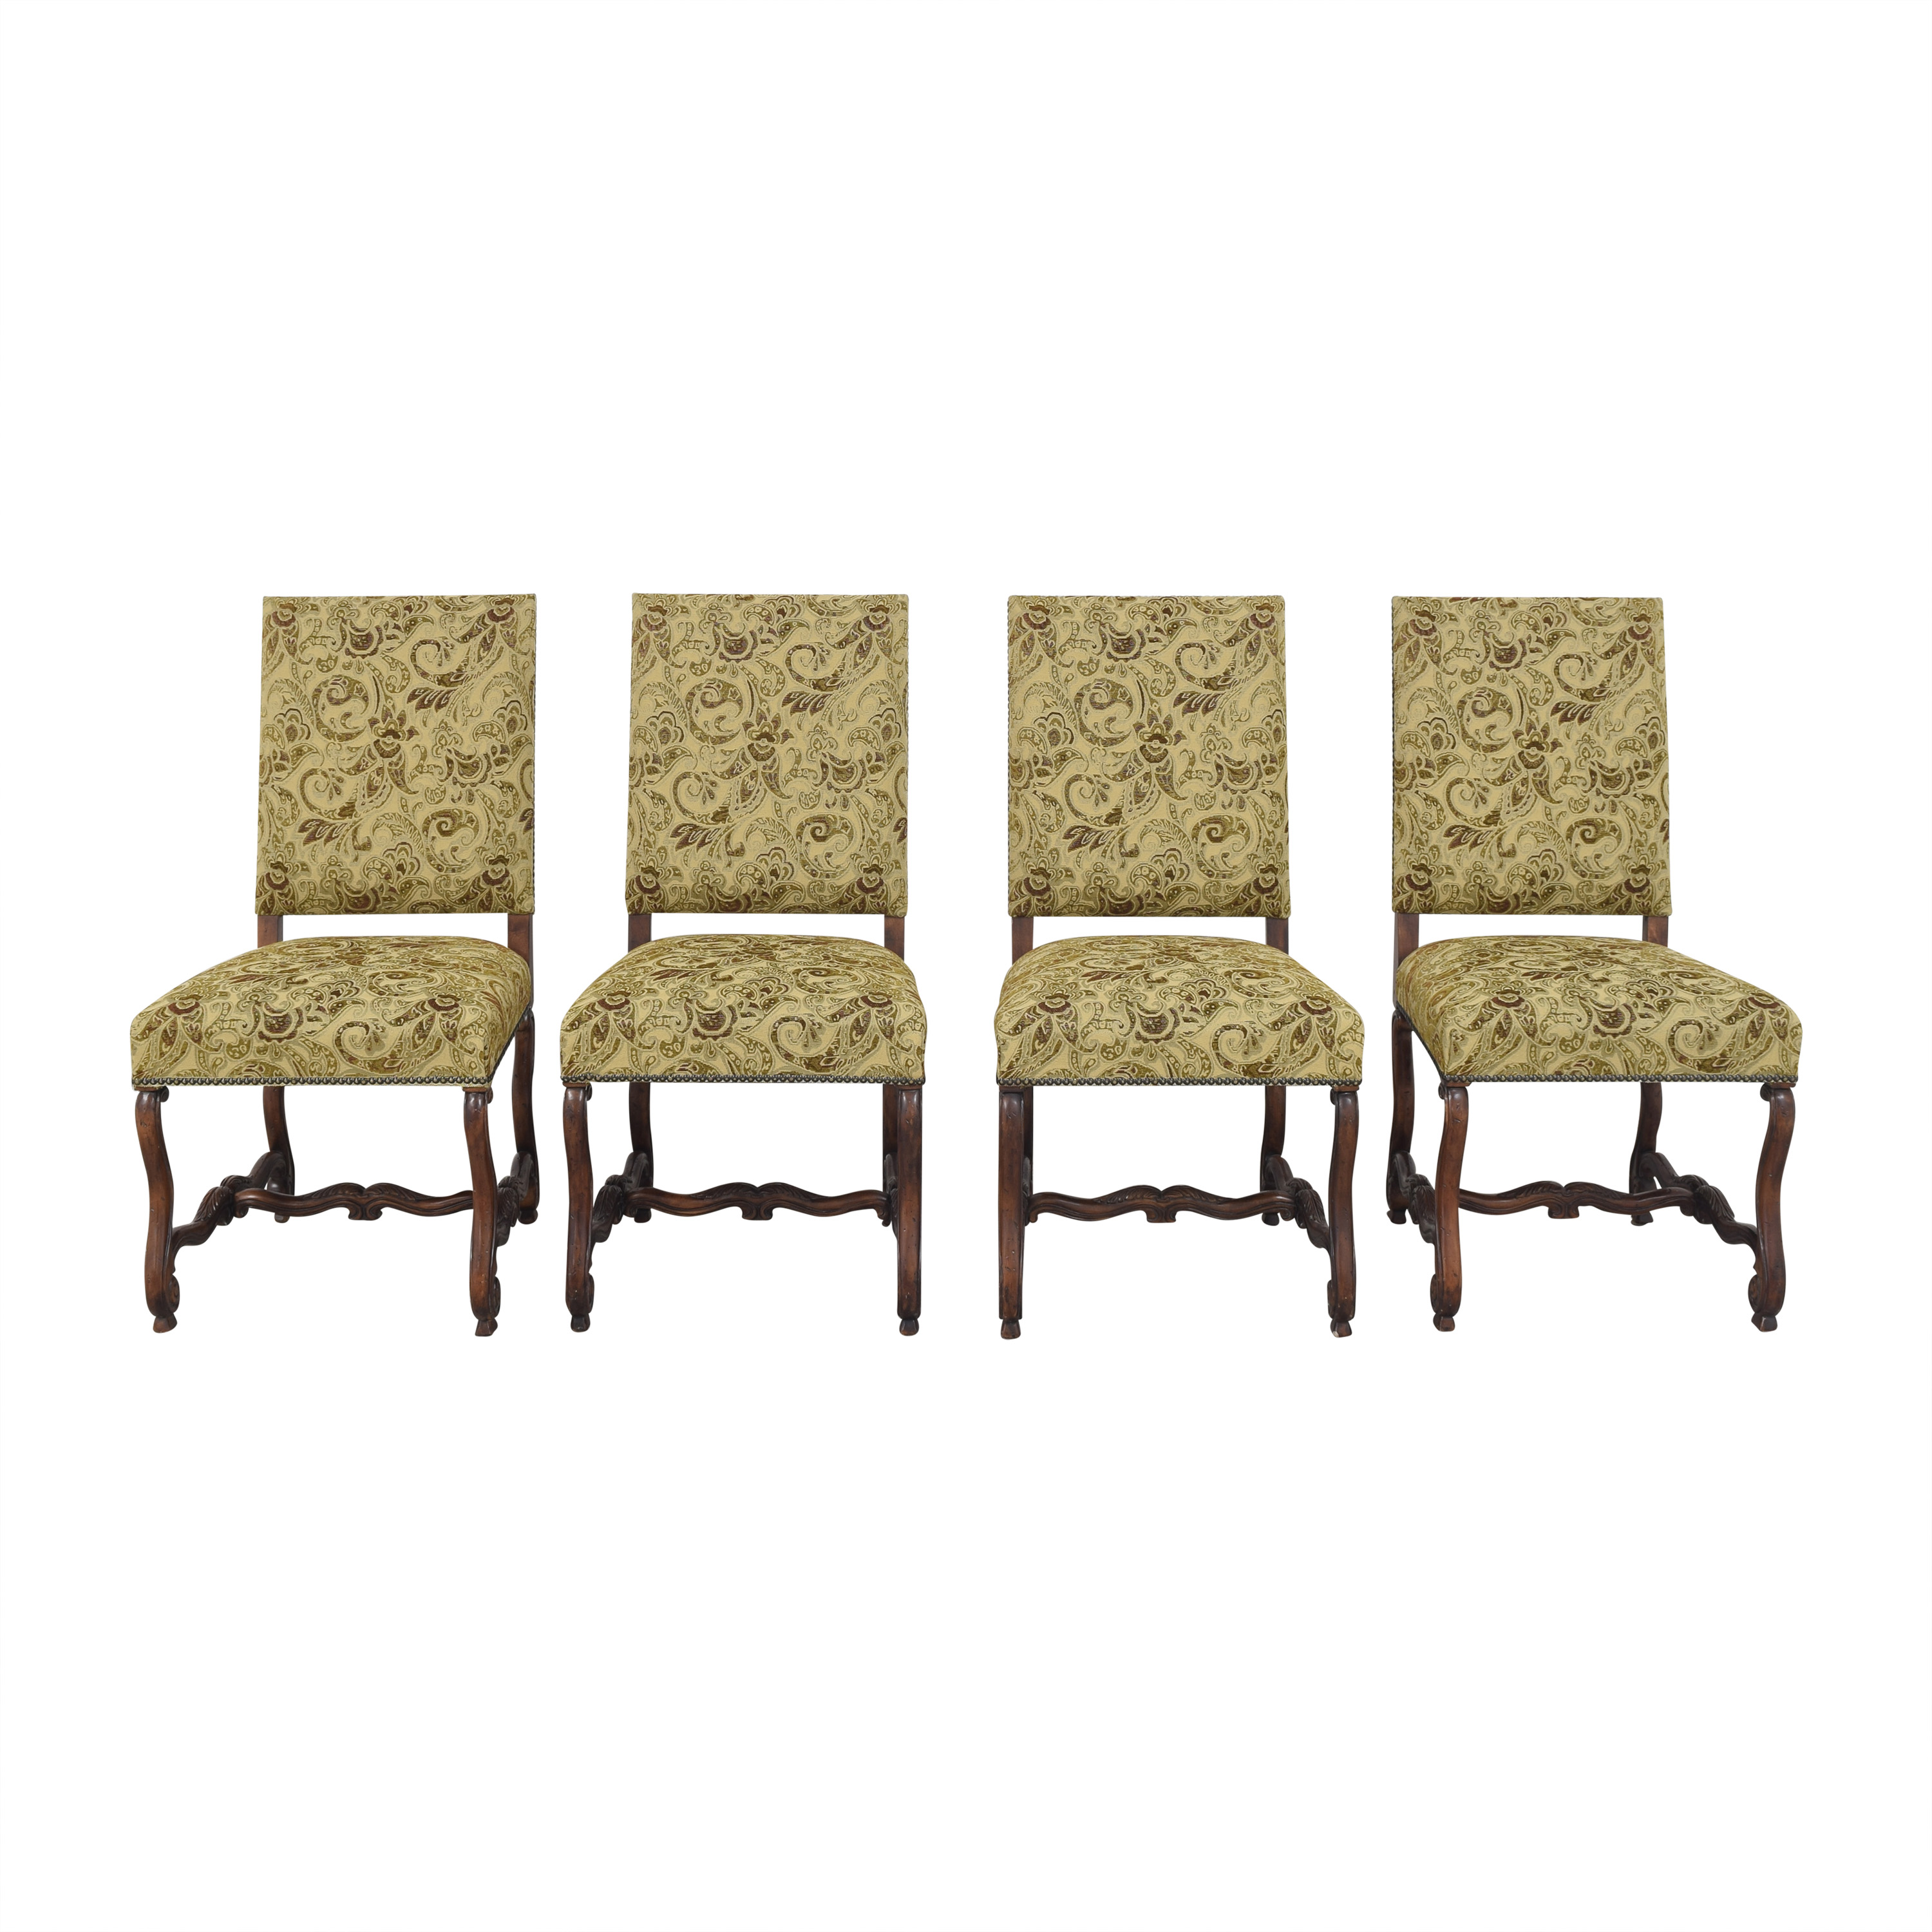 Safavieh Safavieh Paisley Upholstered Dining Chairs coupon